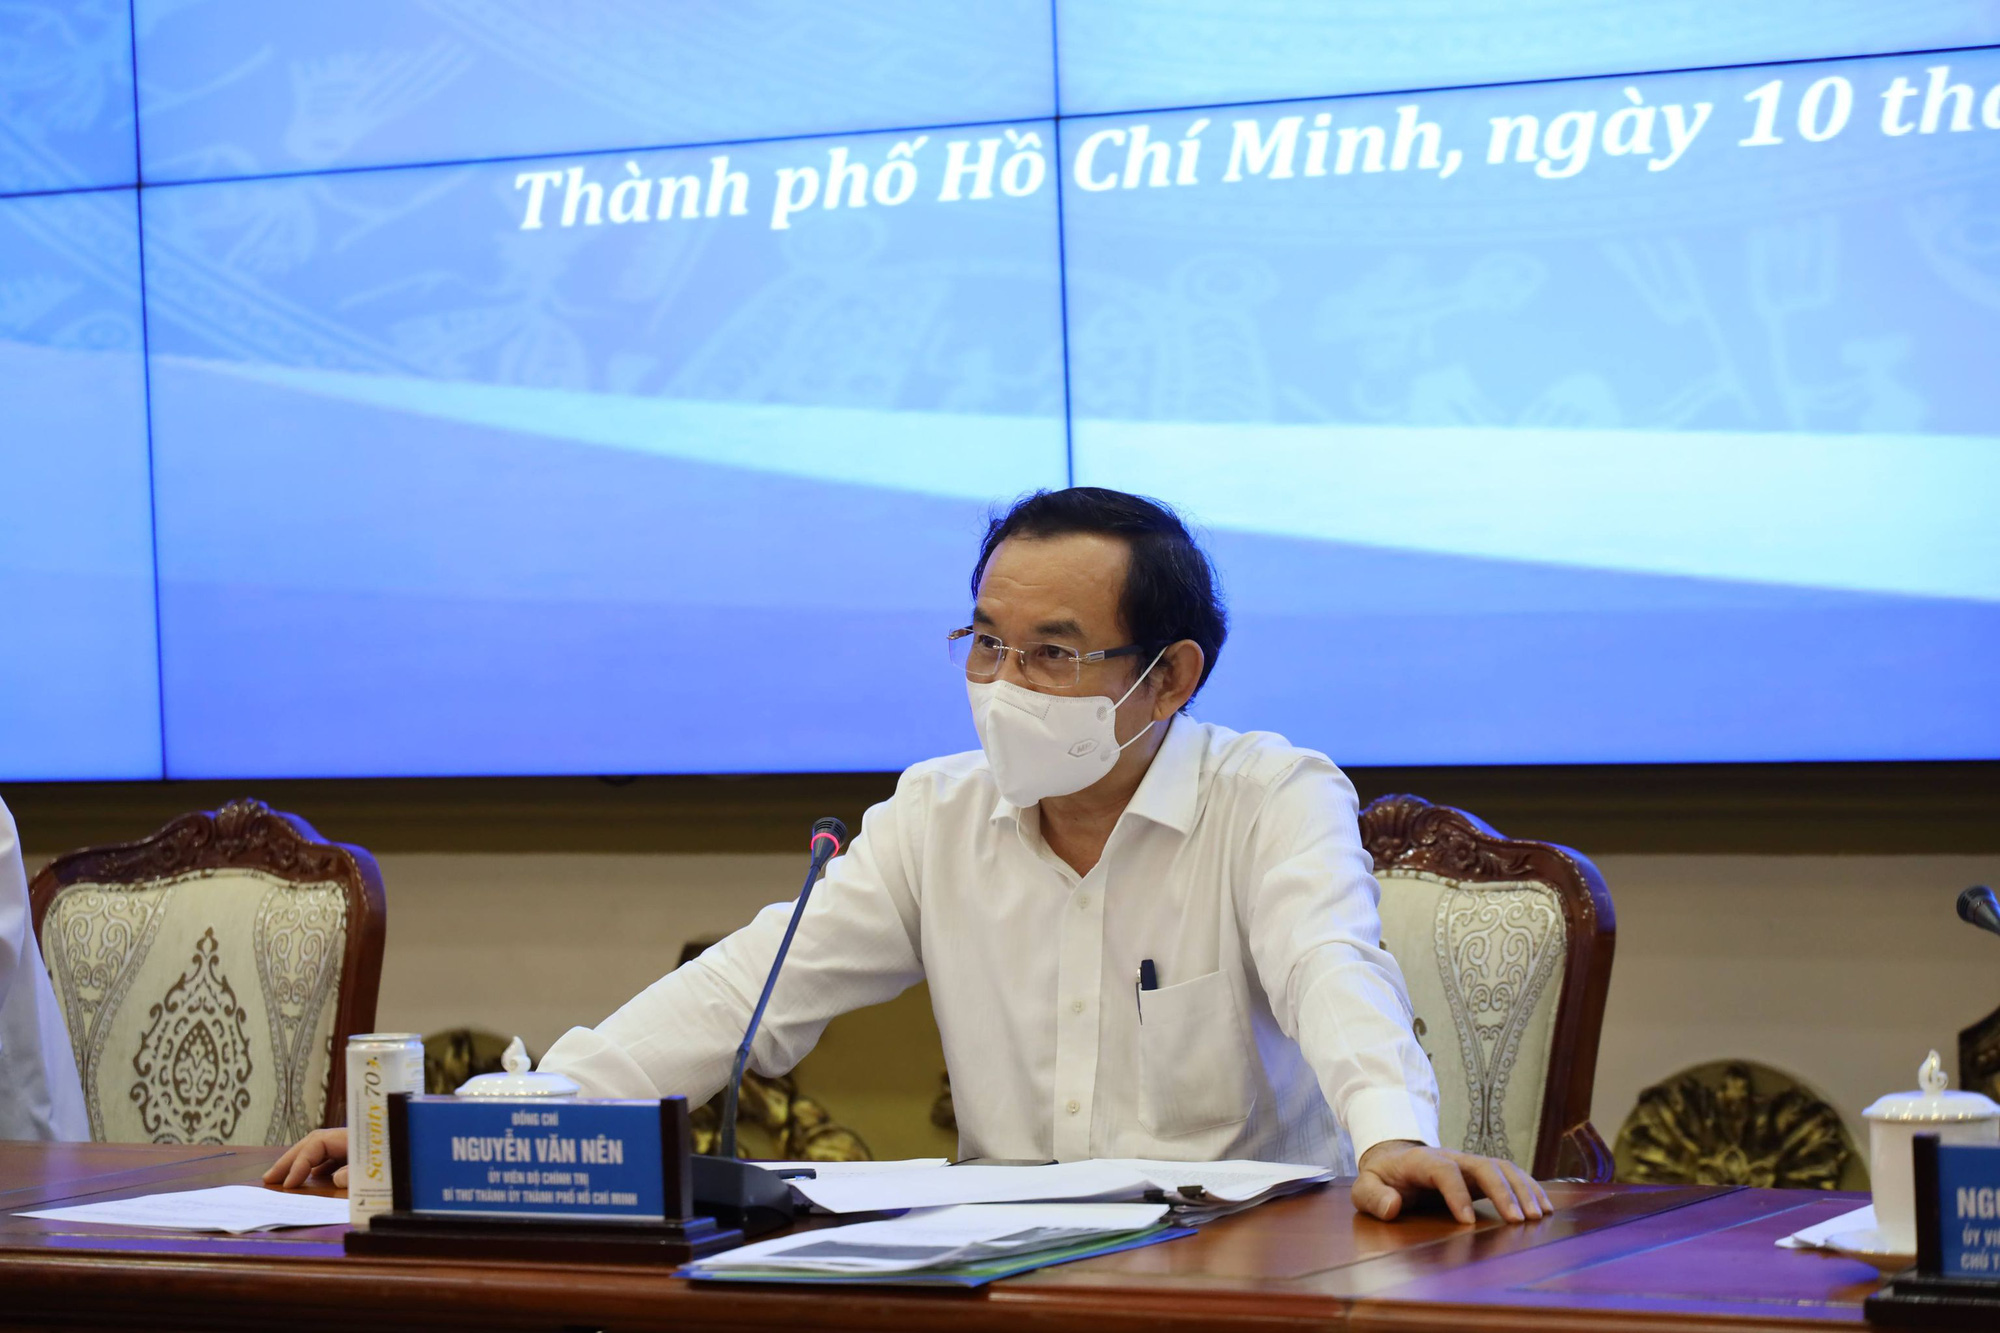 Ho Chi Minh City leaders encourage businesses to increase sourcing of Covid-19 vaccines